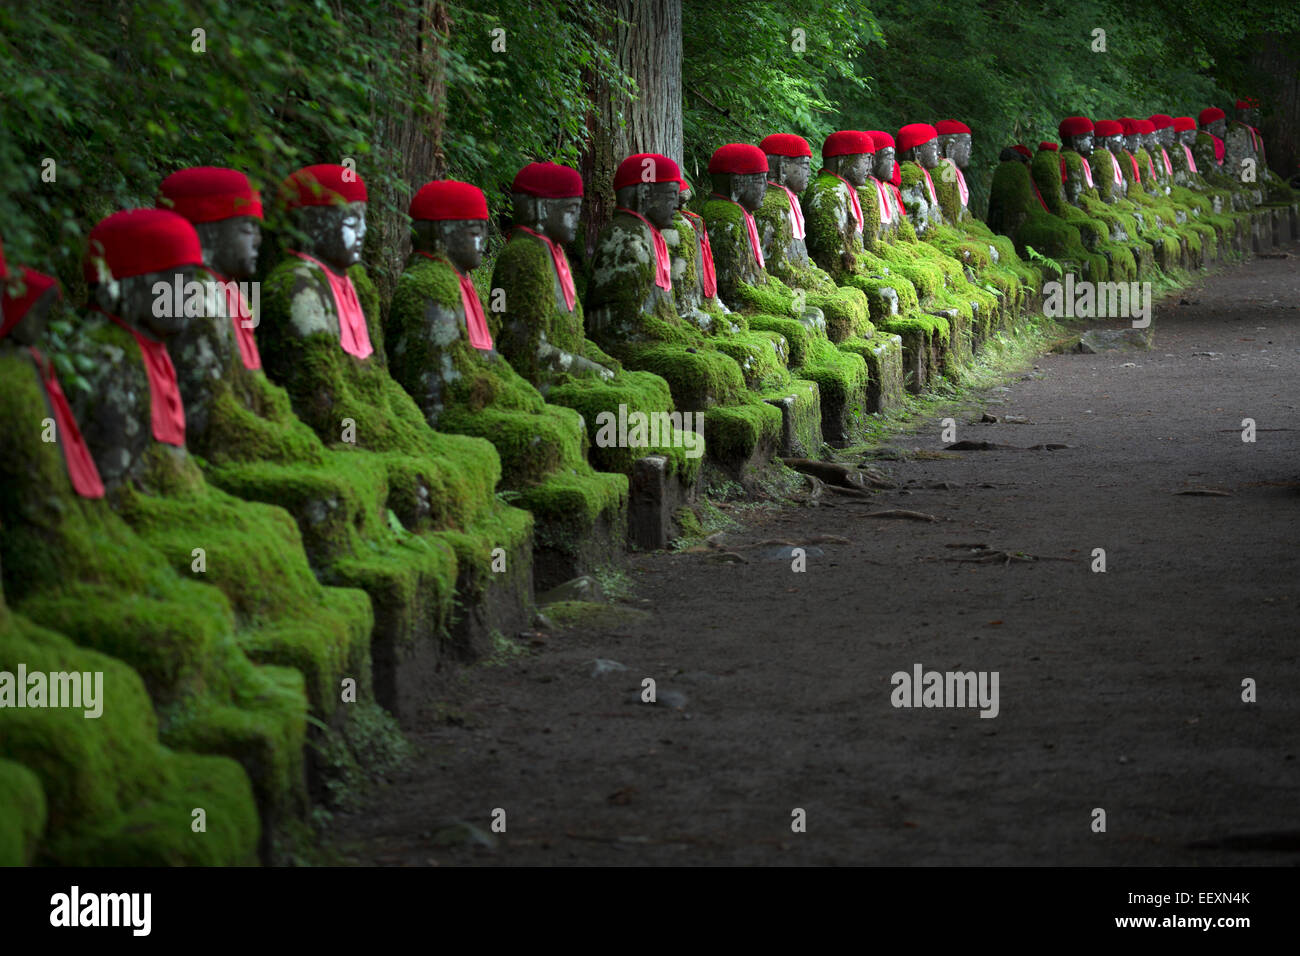 Row of statues in Japan - Stock Image